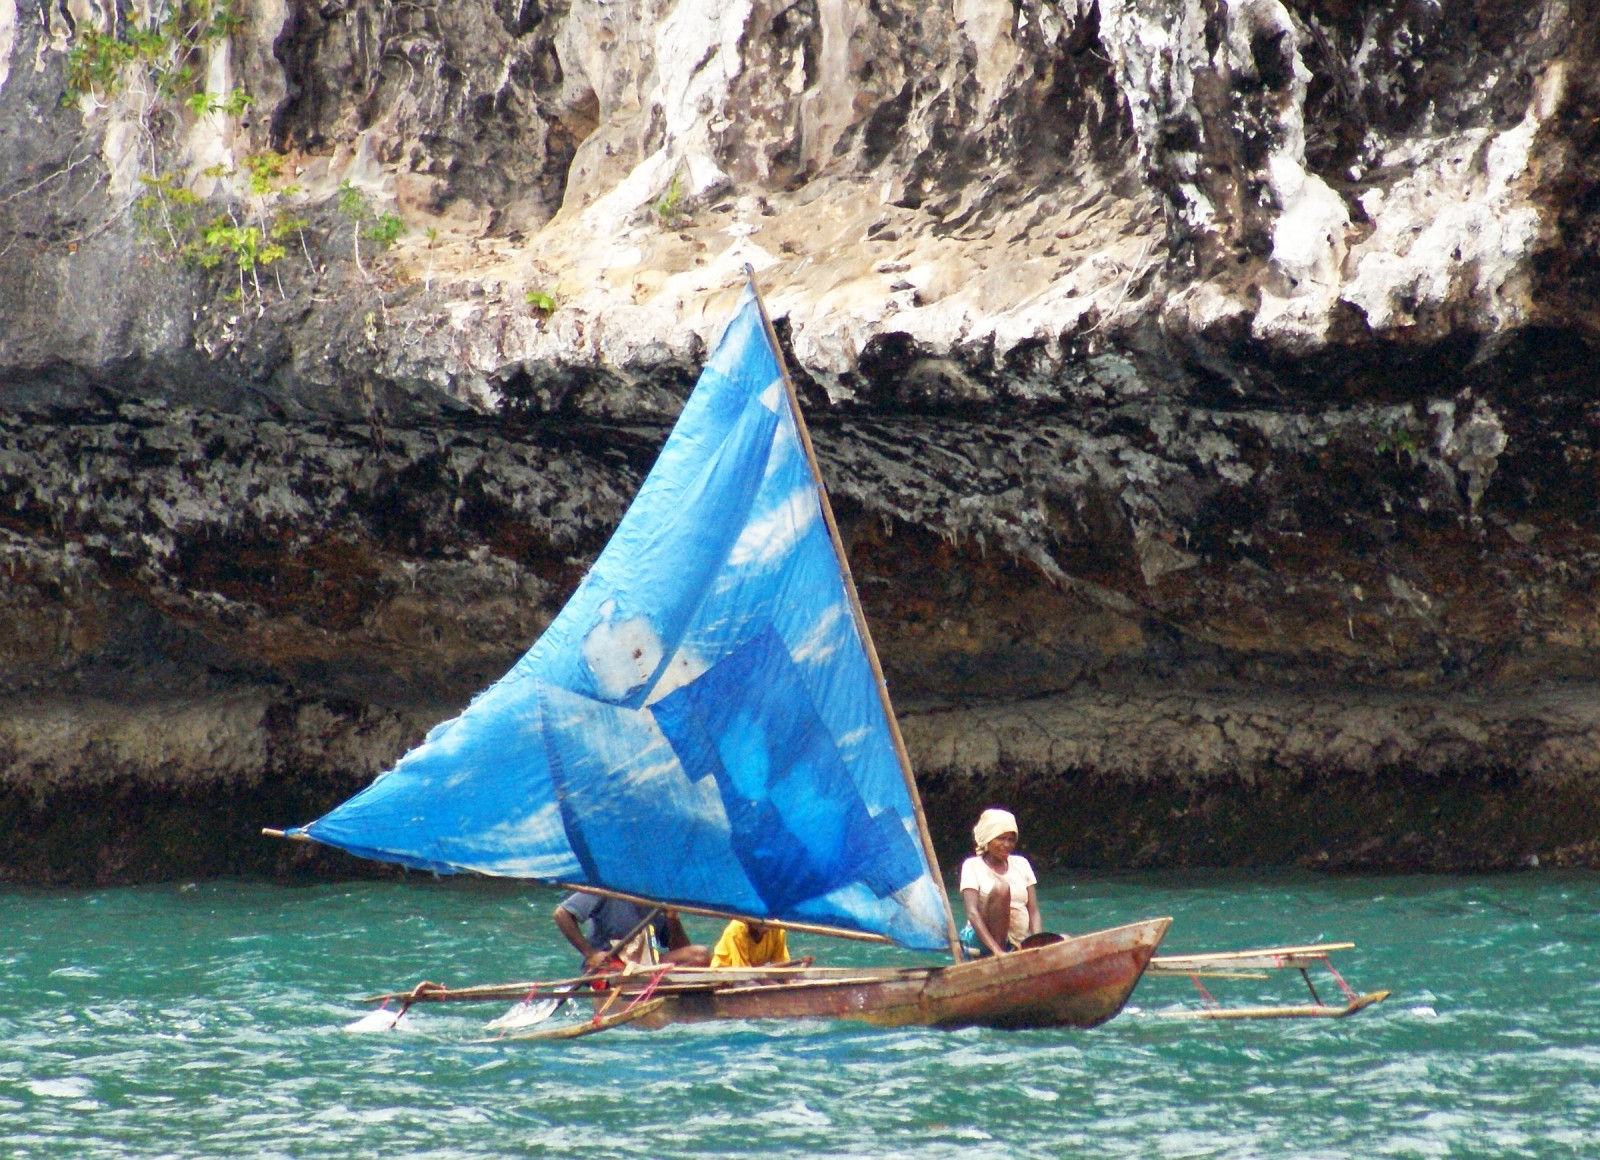 Outrigger canoes are still sailed between settlements in the calm waters of the straits. Photos from Sue Hacking (hackingfamily.com).